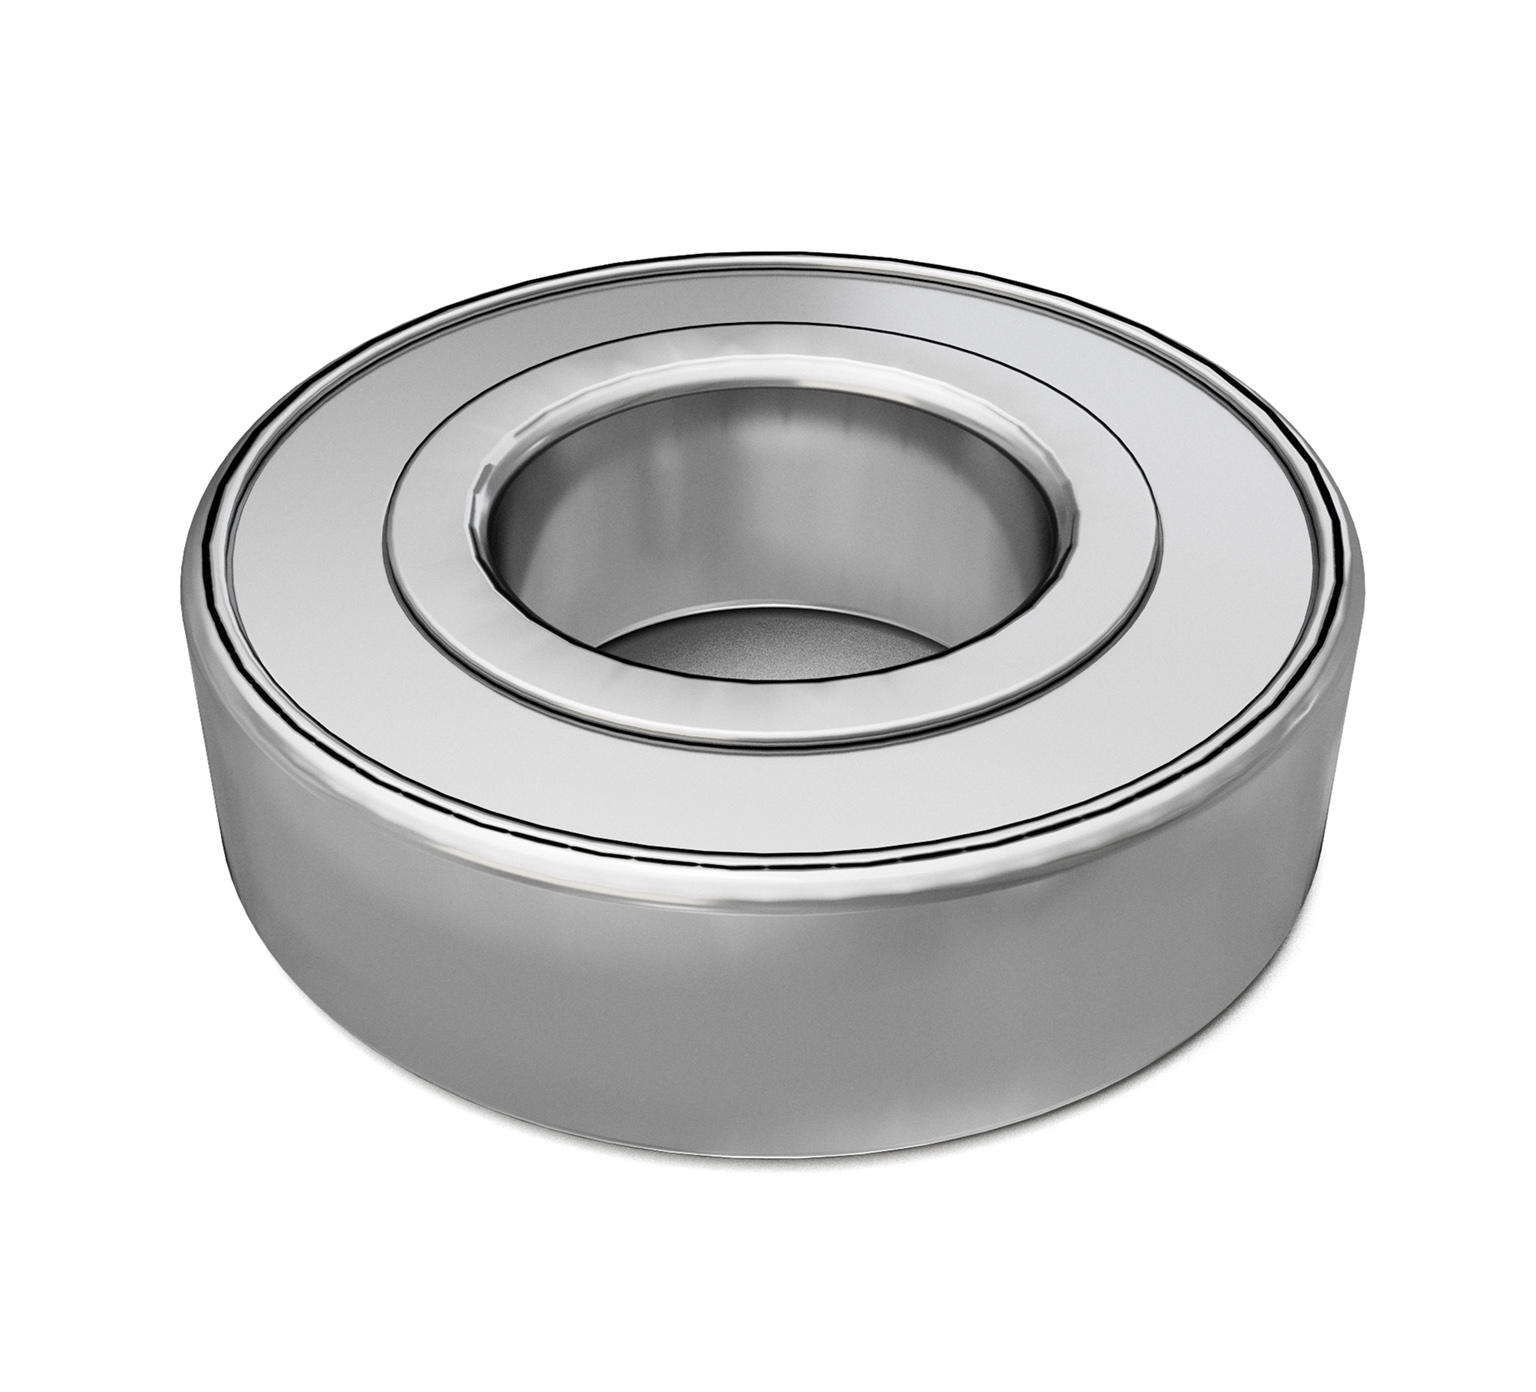 1055377 Steel Ball Bearing - 30.827 x 32.688 x 7.192 in alt 1